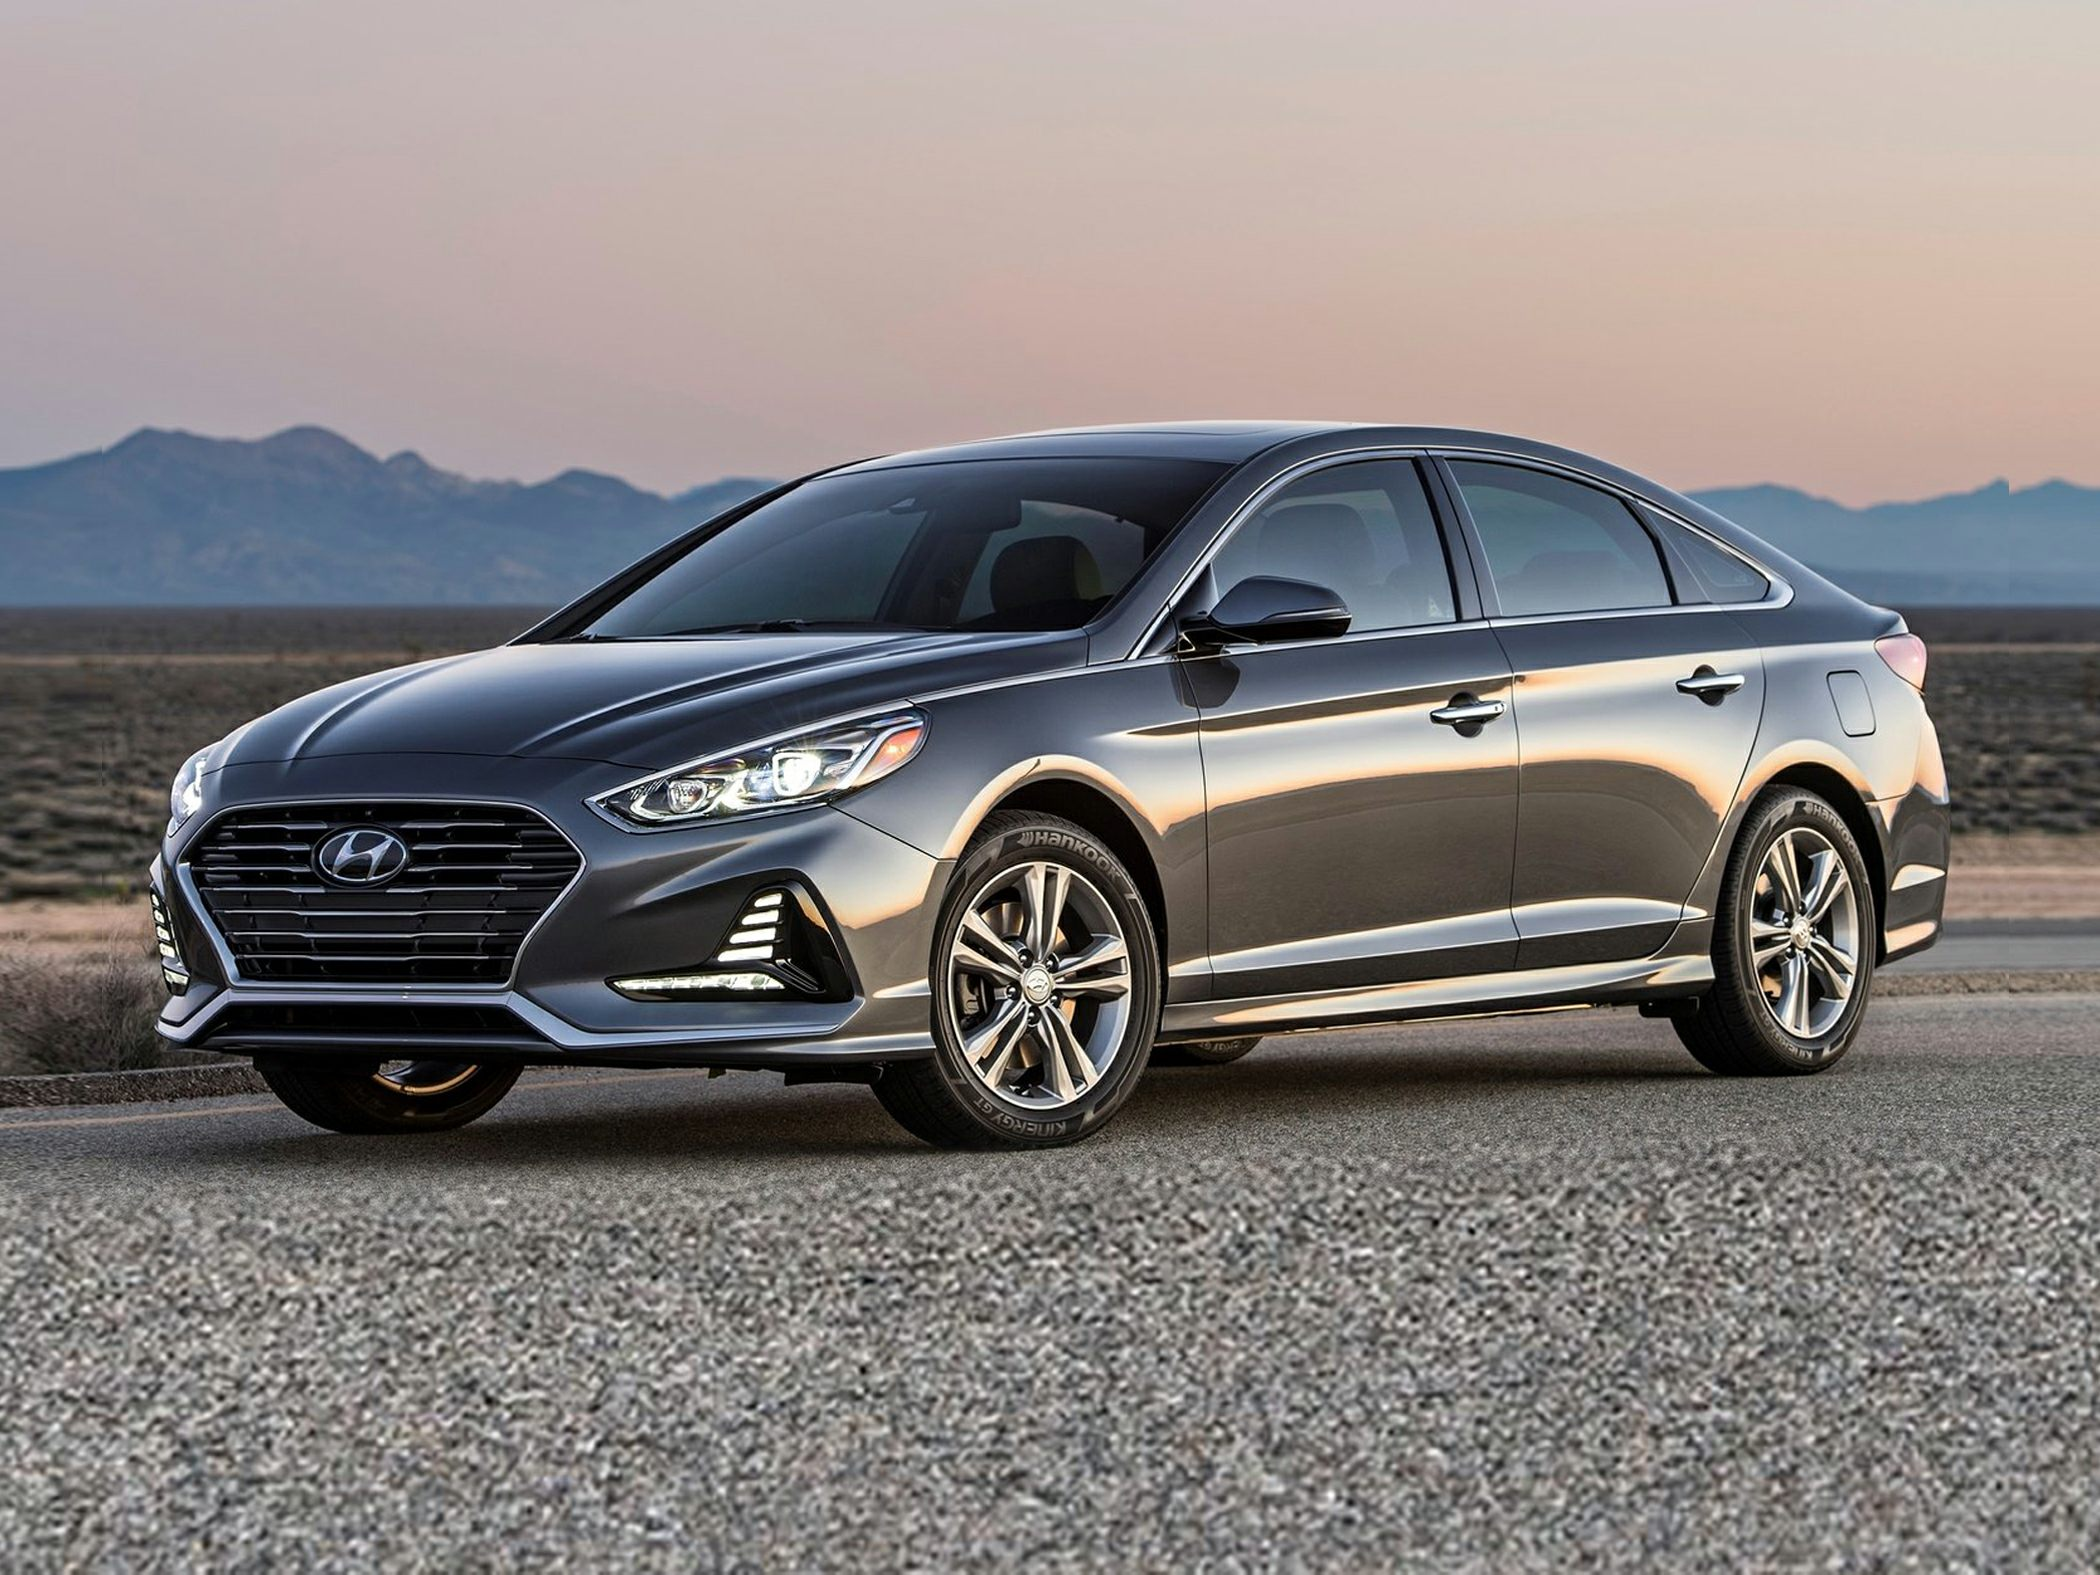 2018 hyundai sonata deals prices incentives leases overview carsdirect. Black Bedroom Furniture Sets. Home Design Ideas